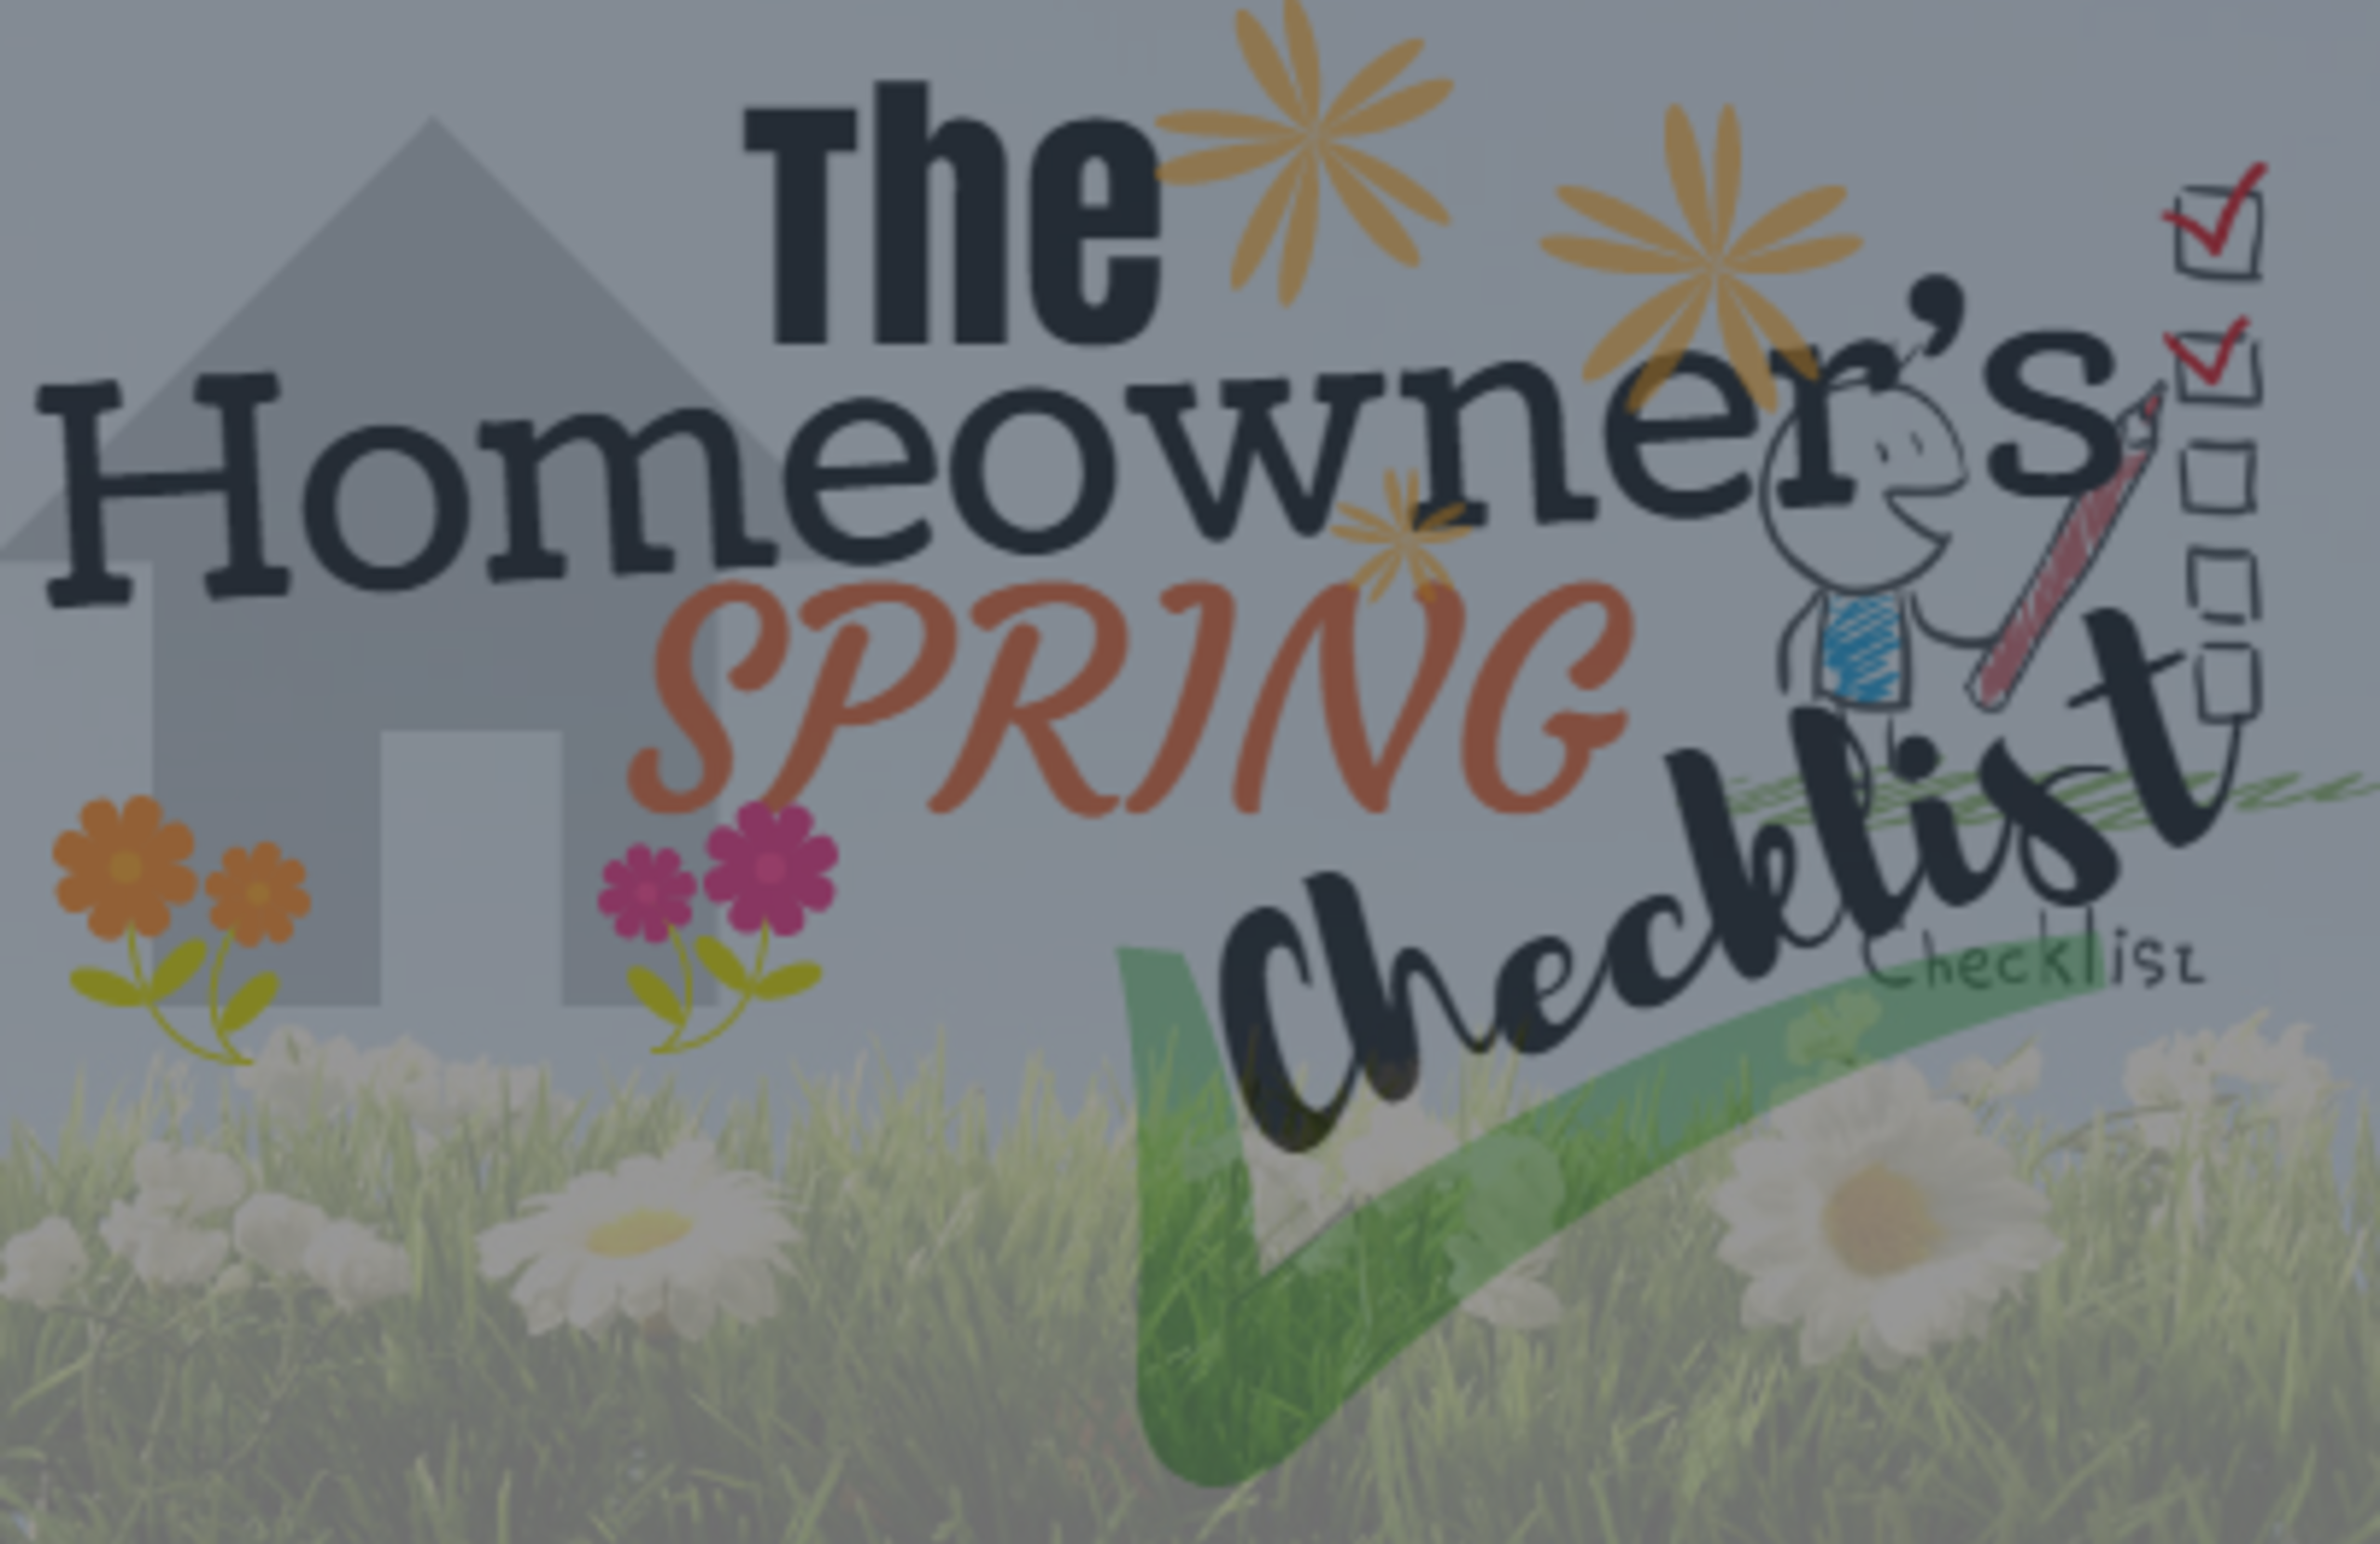 The Homeowner's Spring Checklist